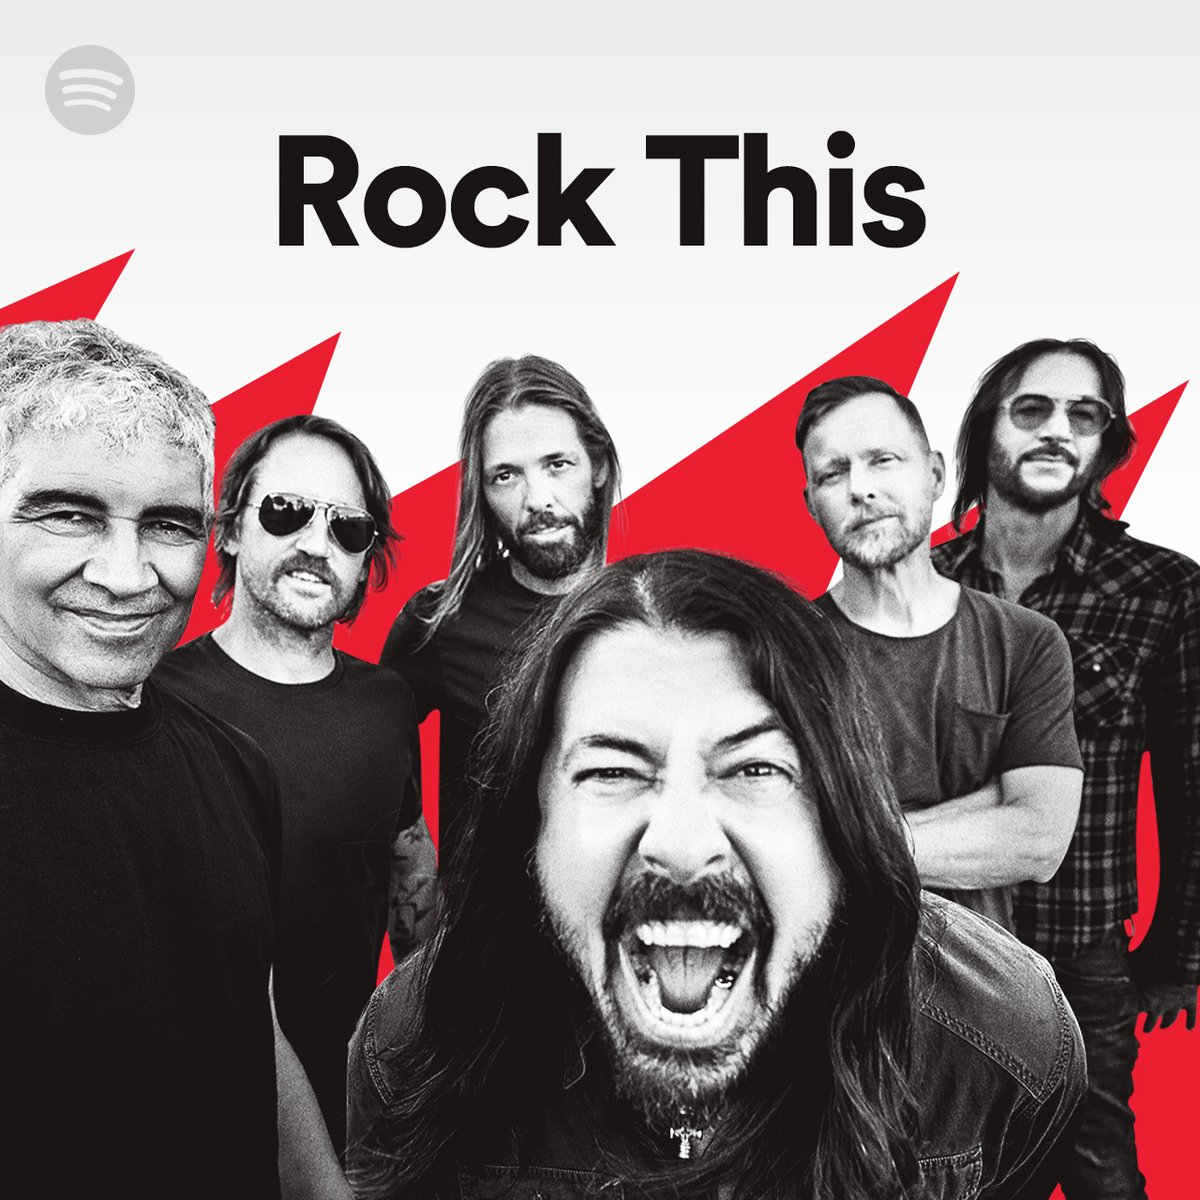 Replying to @foofighters: Turn it up!!! 🤘 #RockThis on @Spotify.   #WOAW #MedicineAtMidnight